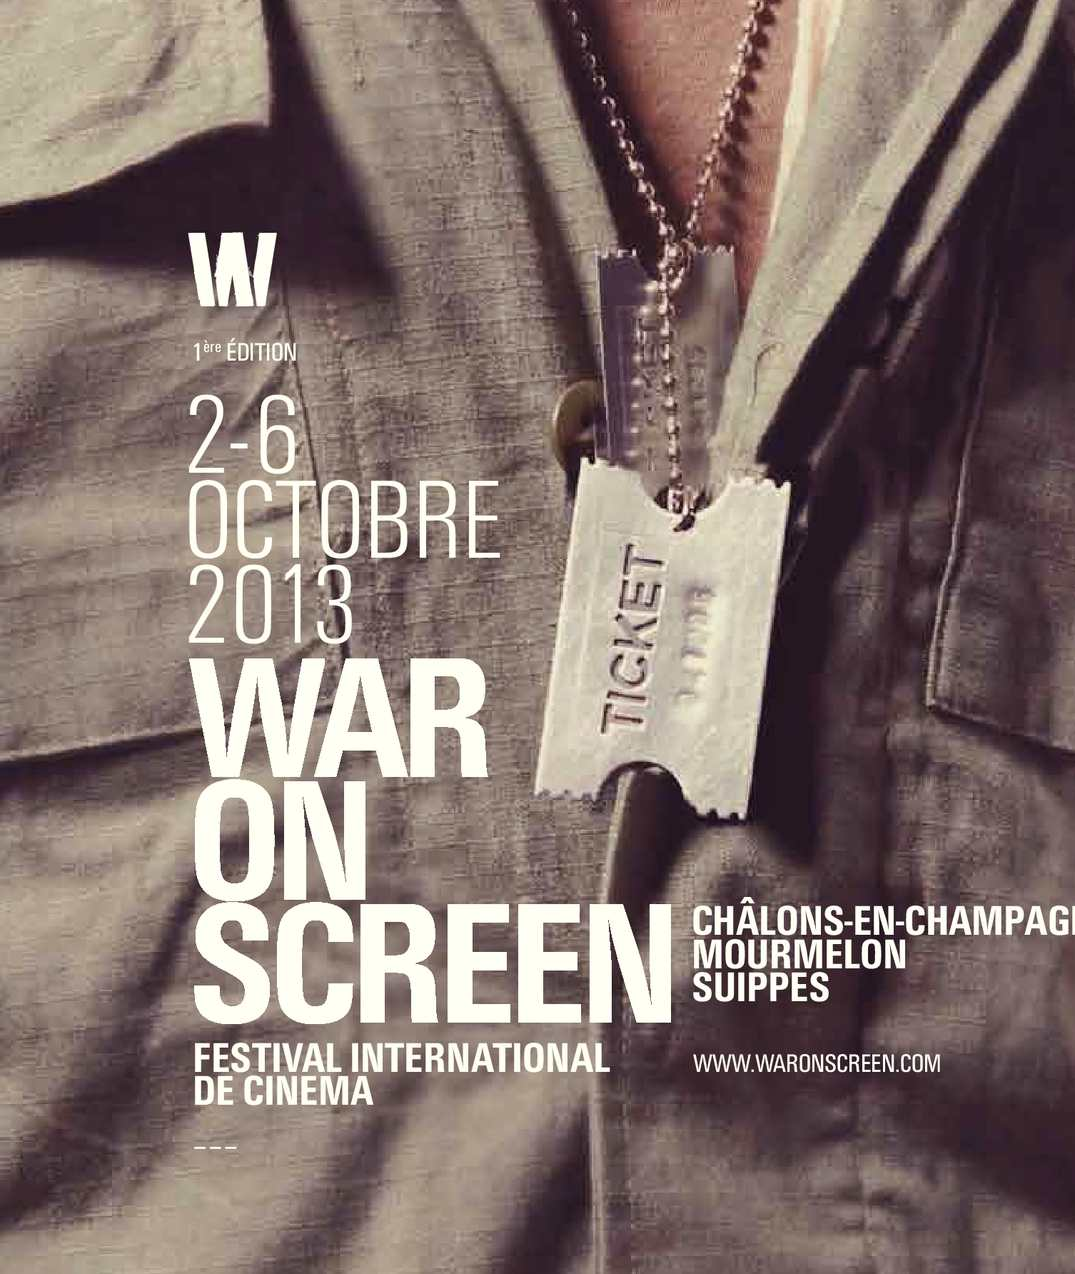 Catalogue 2013 Calaméo On Screen War 54LAjR